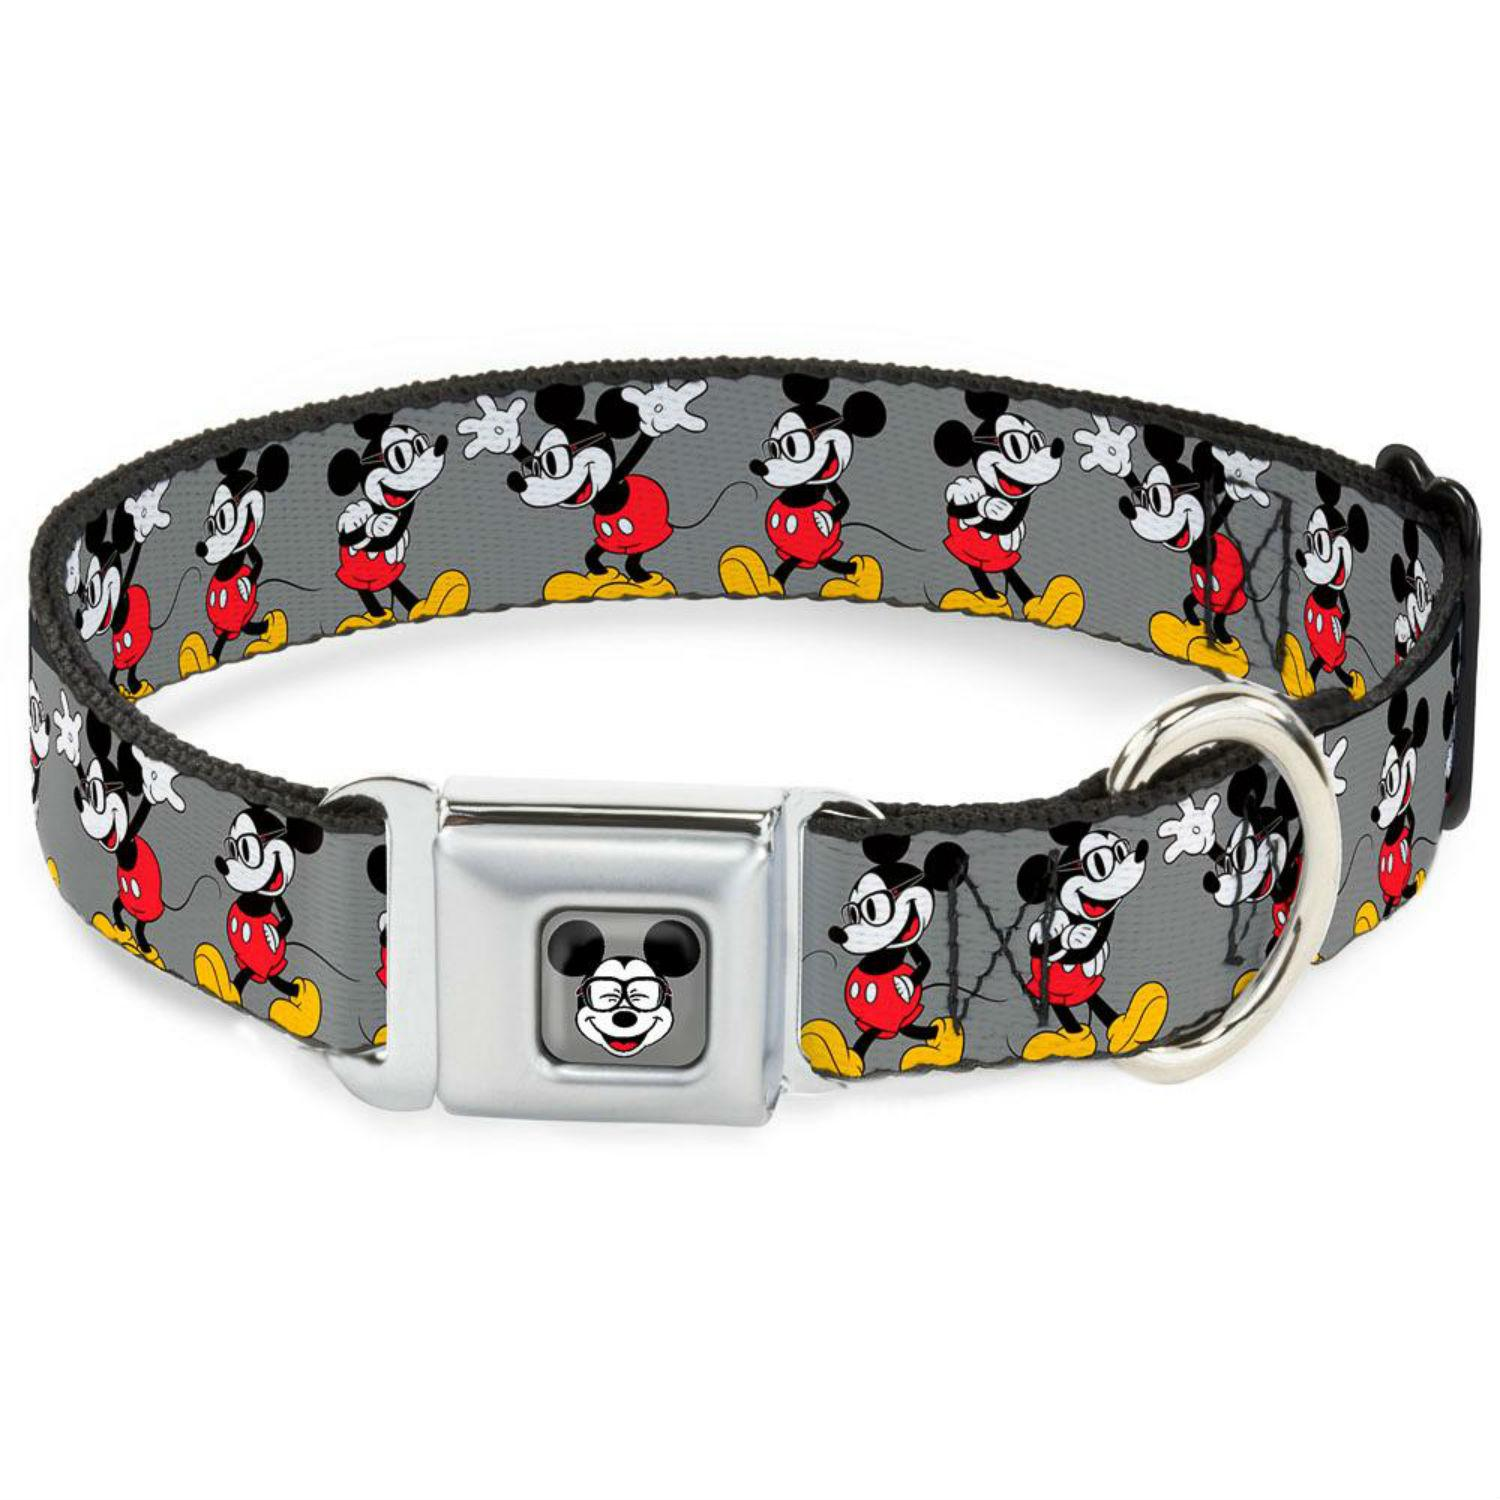 Mickey Mouse with Glasses Seatbelt Buckle Dog Collar by Buckle-Down